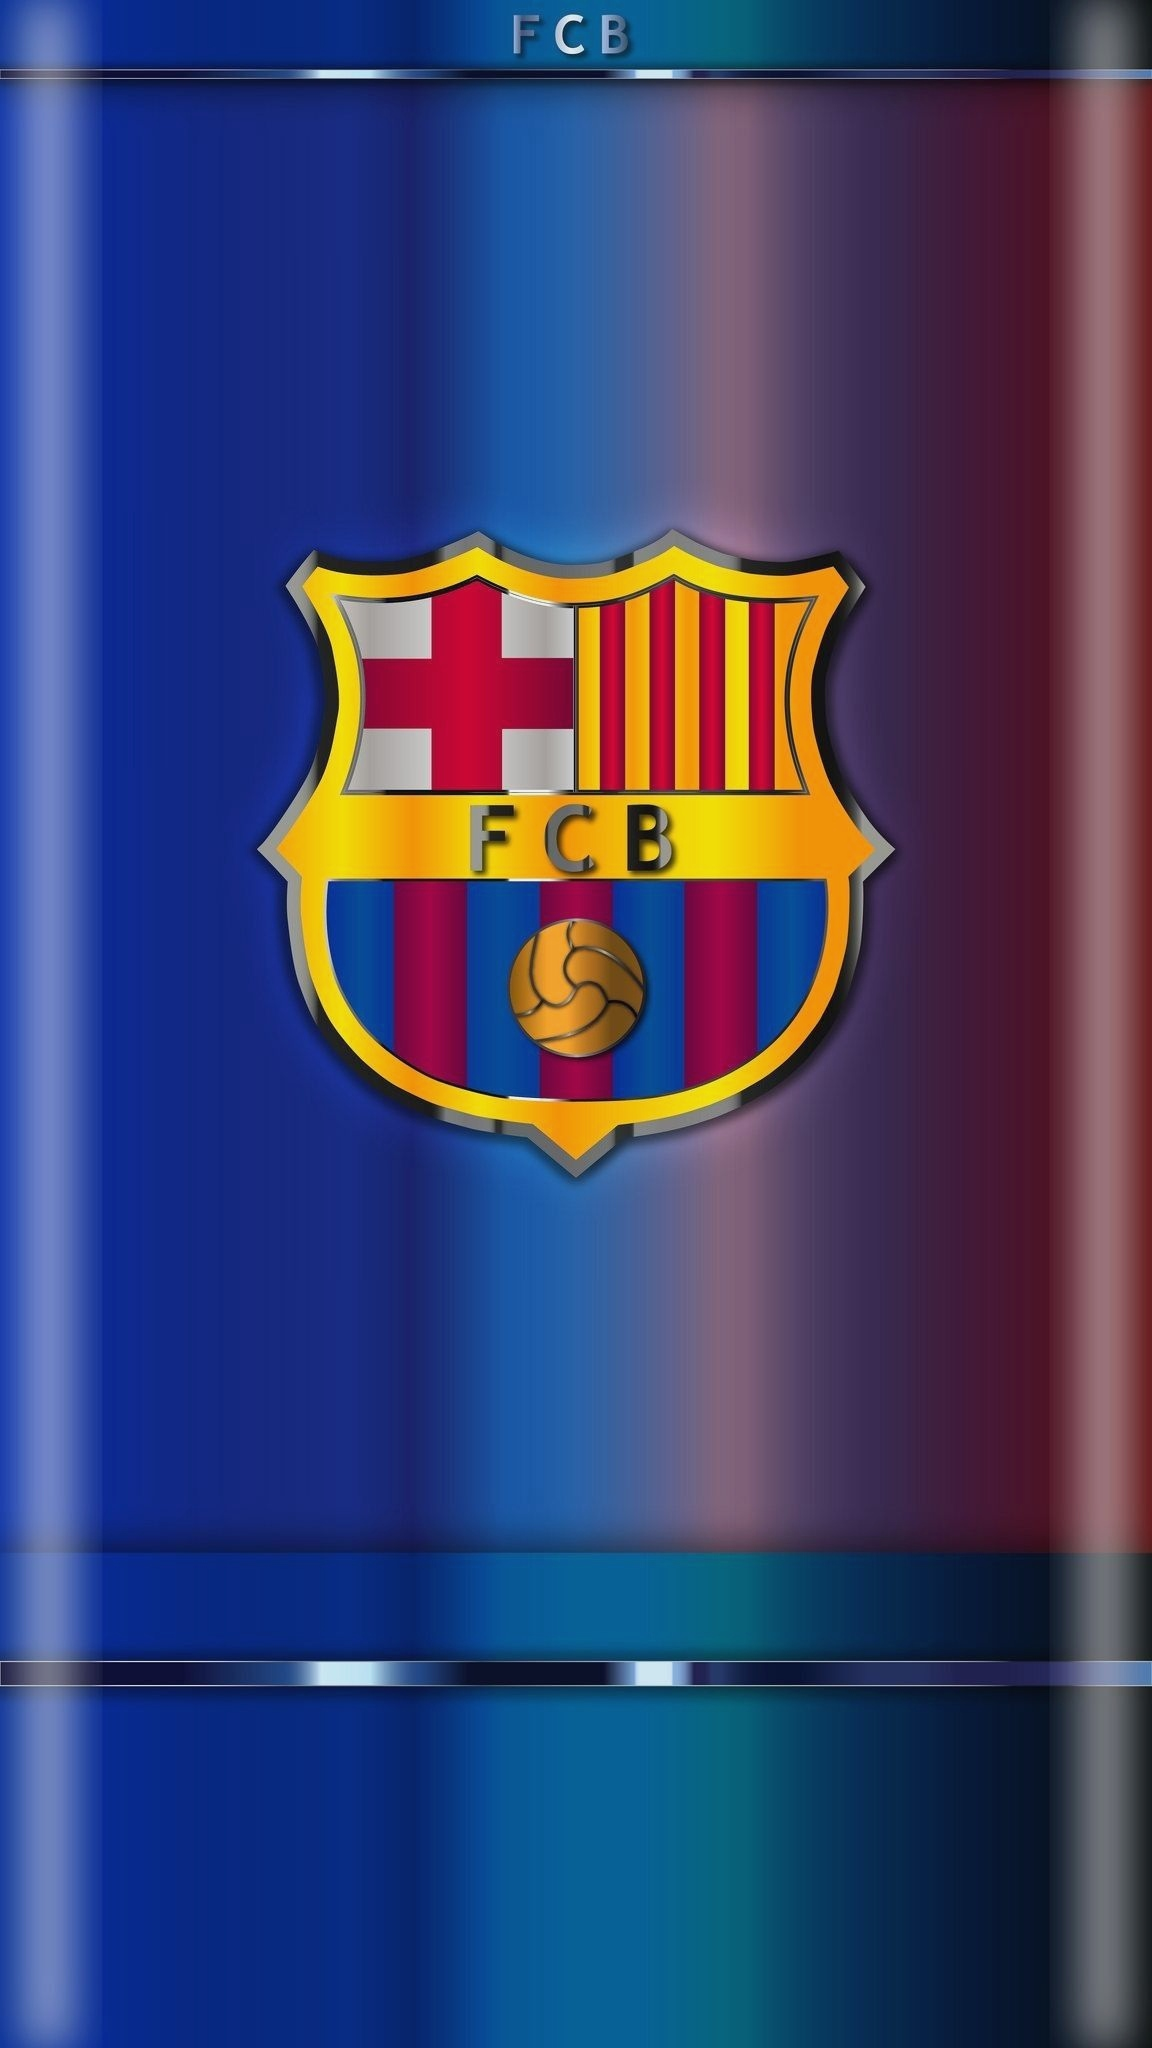 Fc Barcelona Wallpaper 4k 2277807 Hd Wallpaper Backgrounds Download